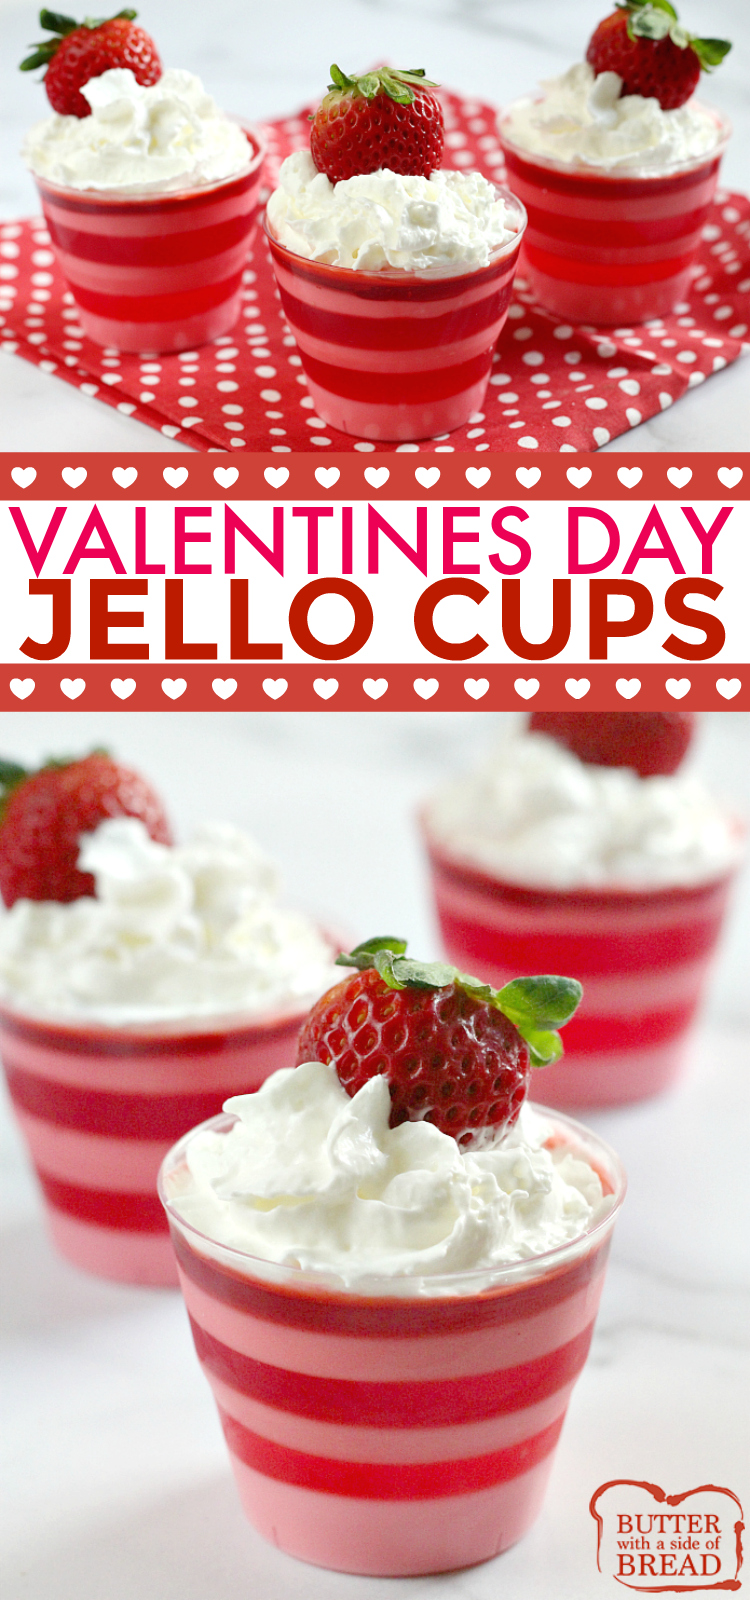 Layered Valentines Jello Cups are so fun and easy to make for Valentines Day! All you need is jello and yogurt to make this delicious and simple jello recipe!